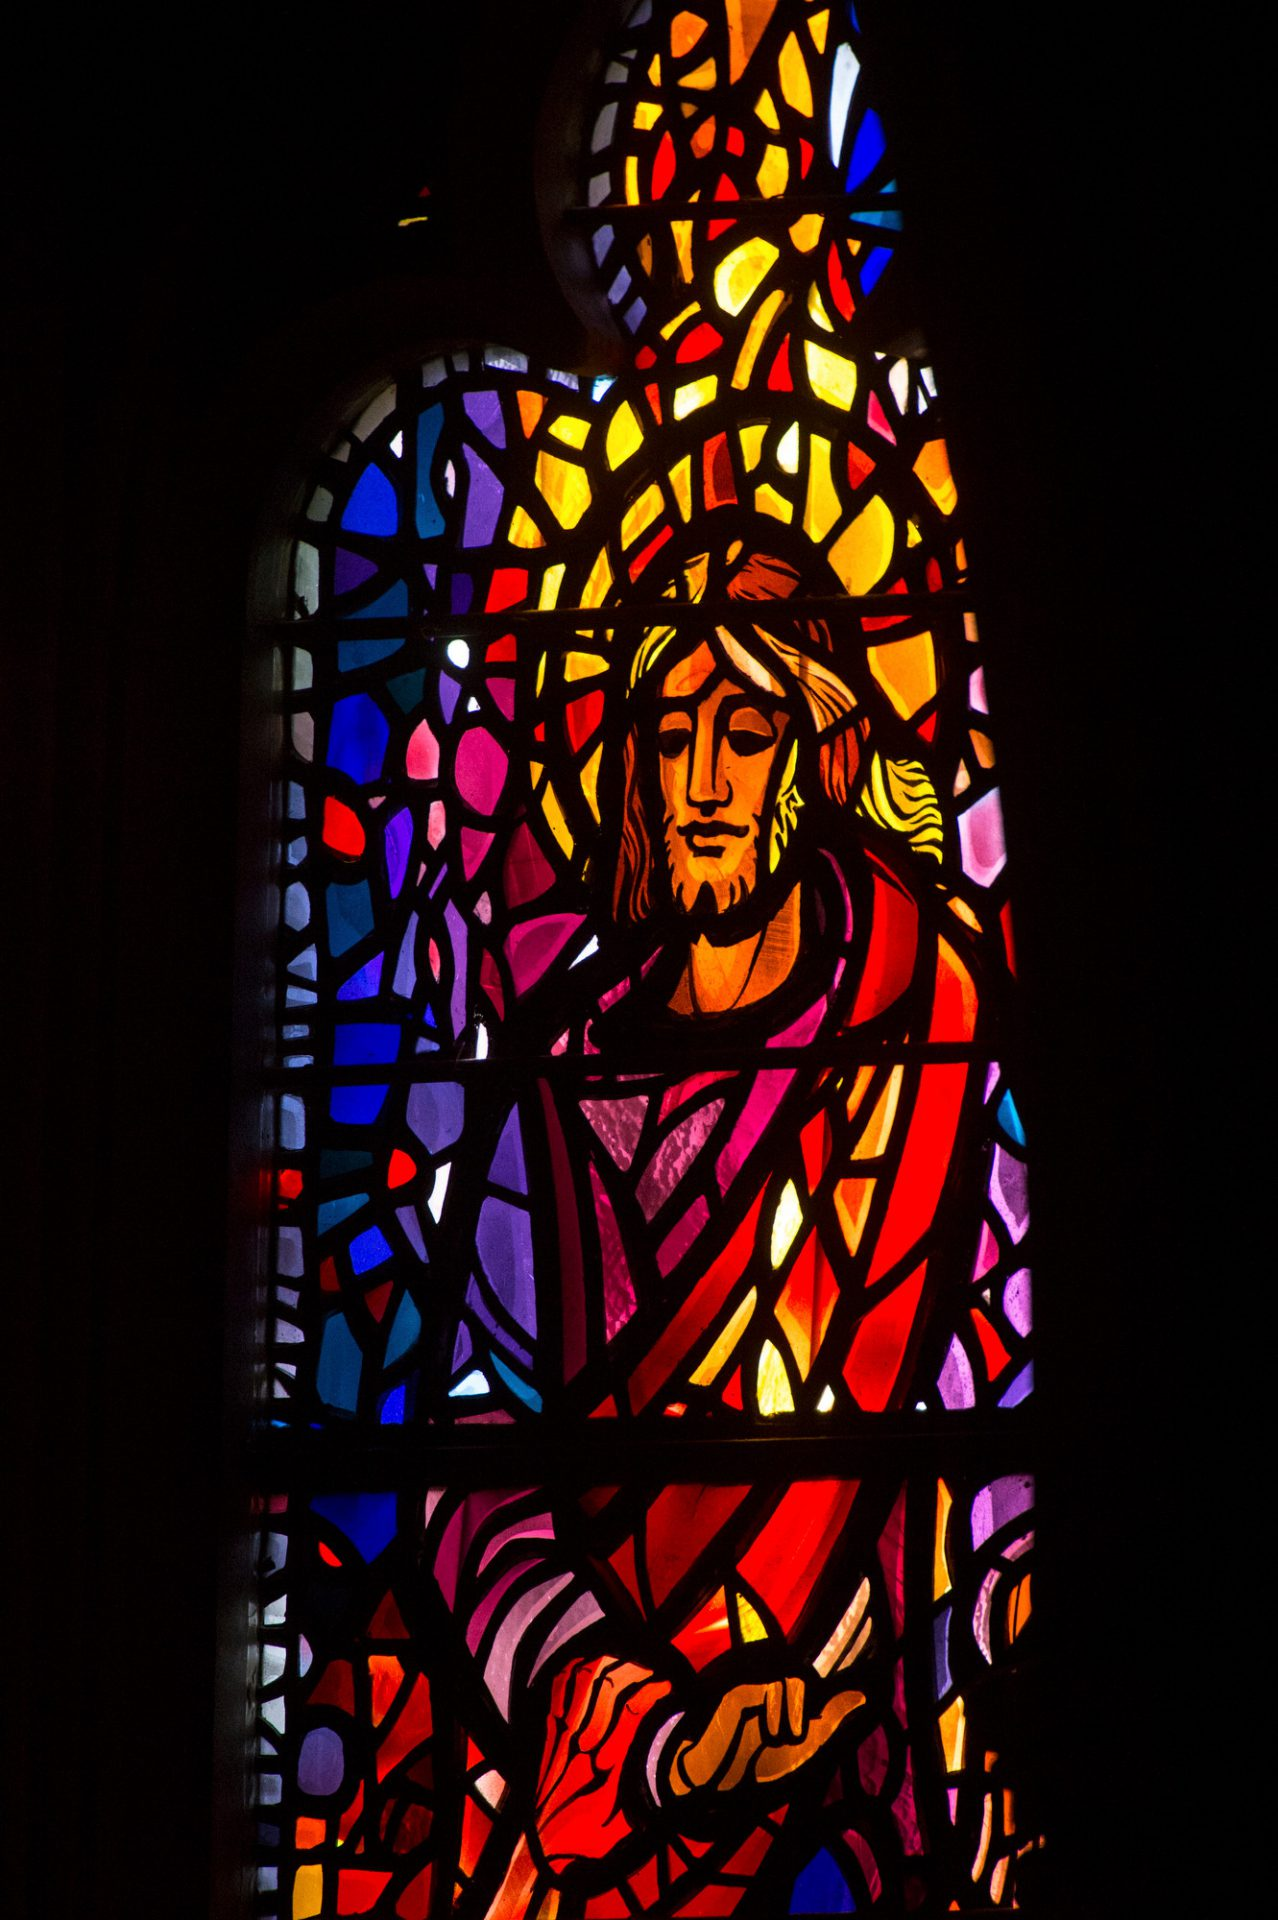 Photo: A stained glass window at the Washington National Cathedral in Washington, D.C.